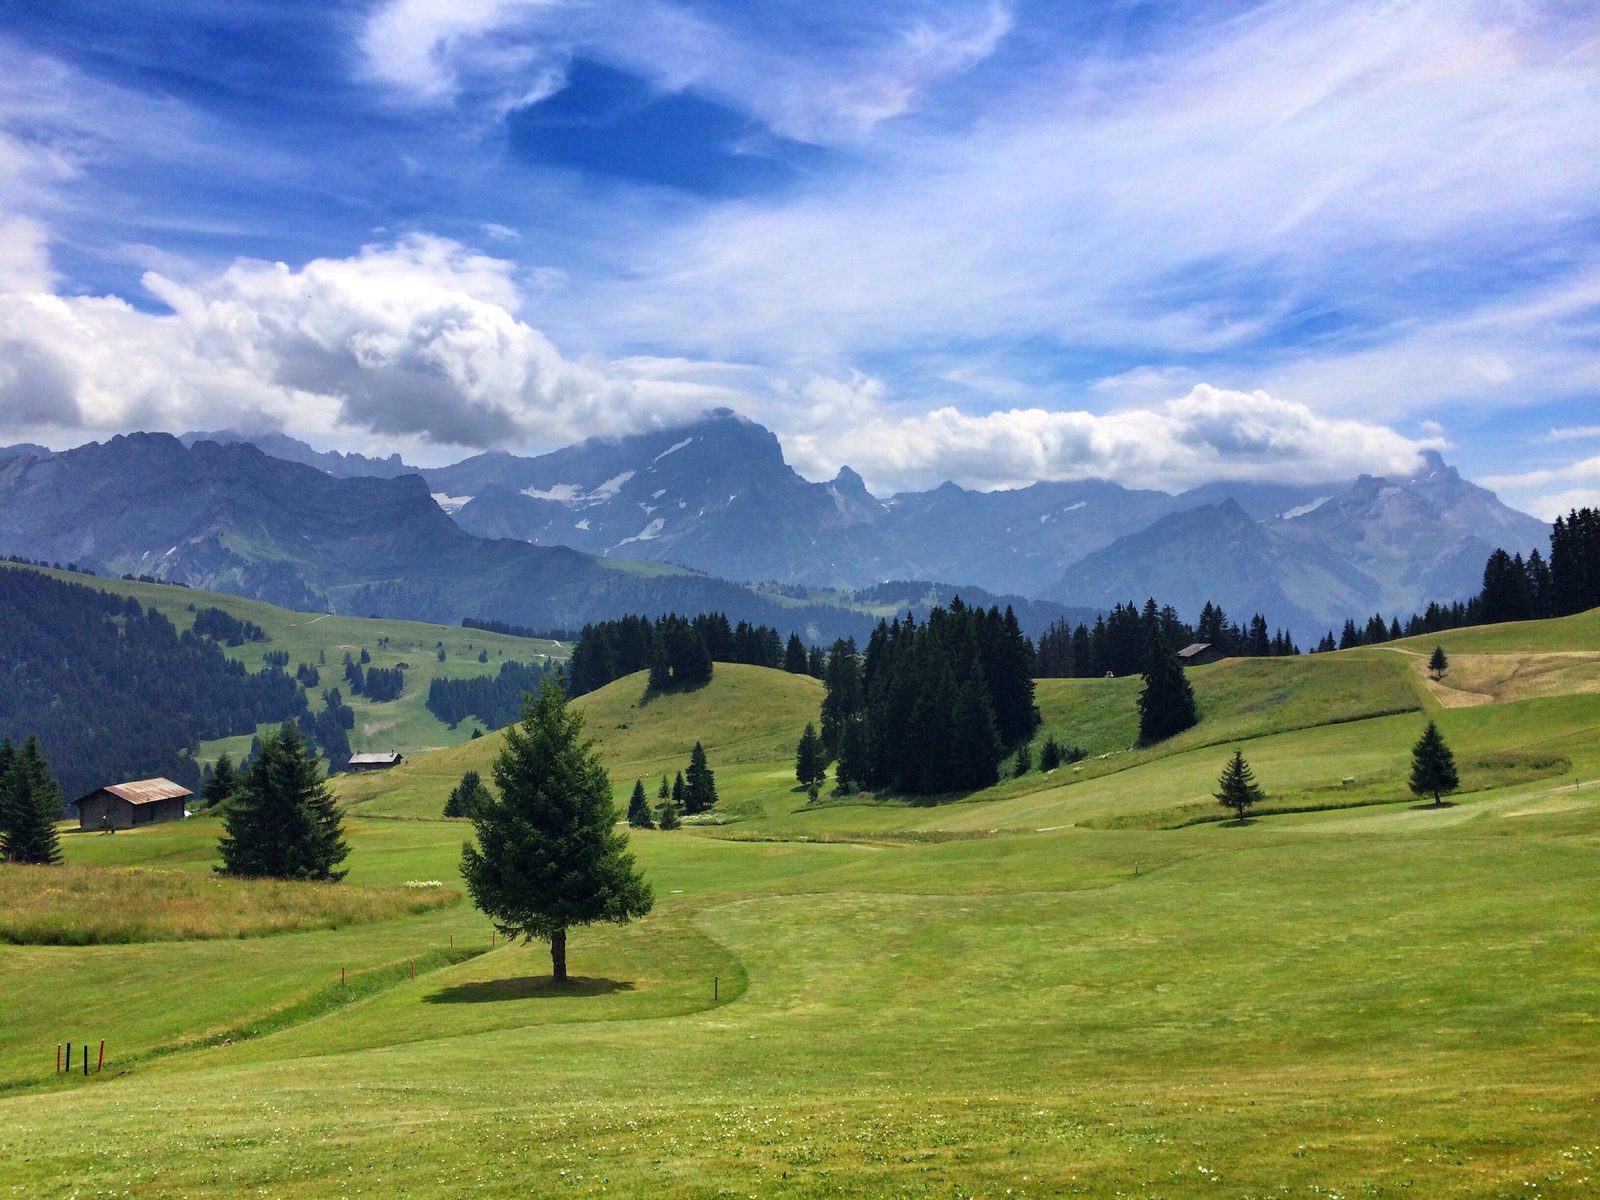 Golfing at golf club Gams-Werdenberg, -Bad Ragaz, -Heidiland, -Dormat/Ems or Lenzerheideg, from your luxury holiday home on Resort Walensee Switzerland